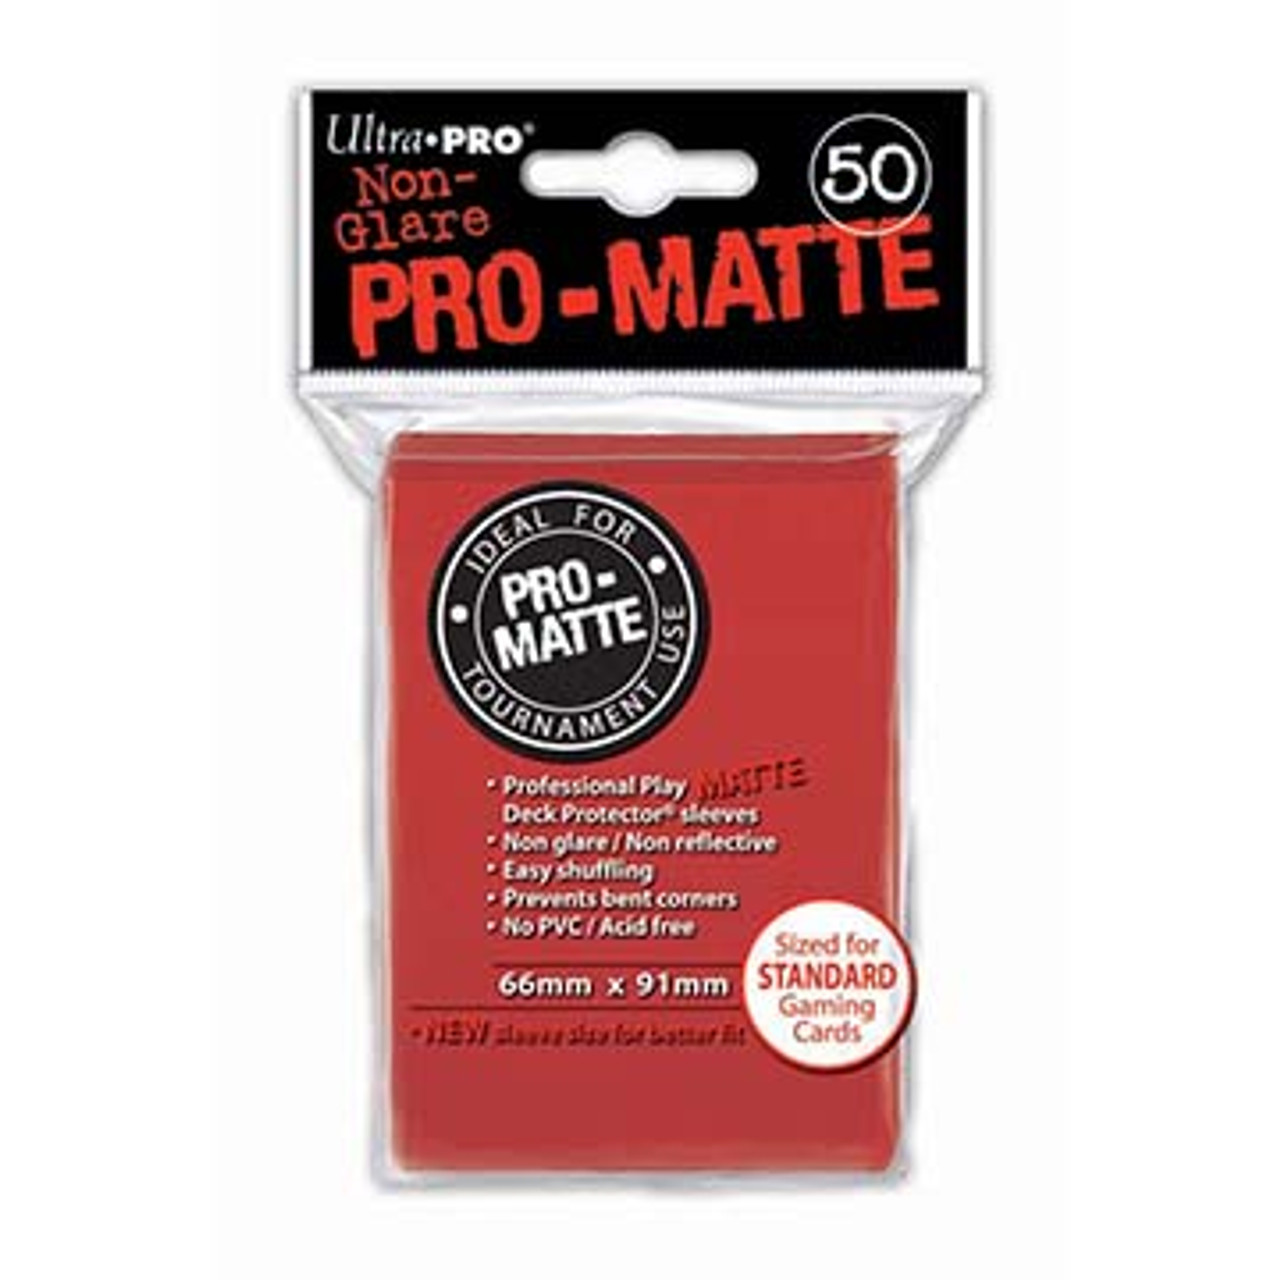 Deck Protectors - Pro-Matte - Red (One Pack of 50)